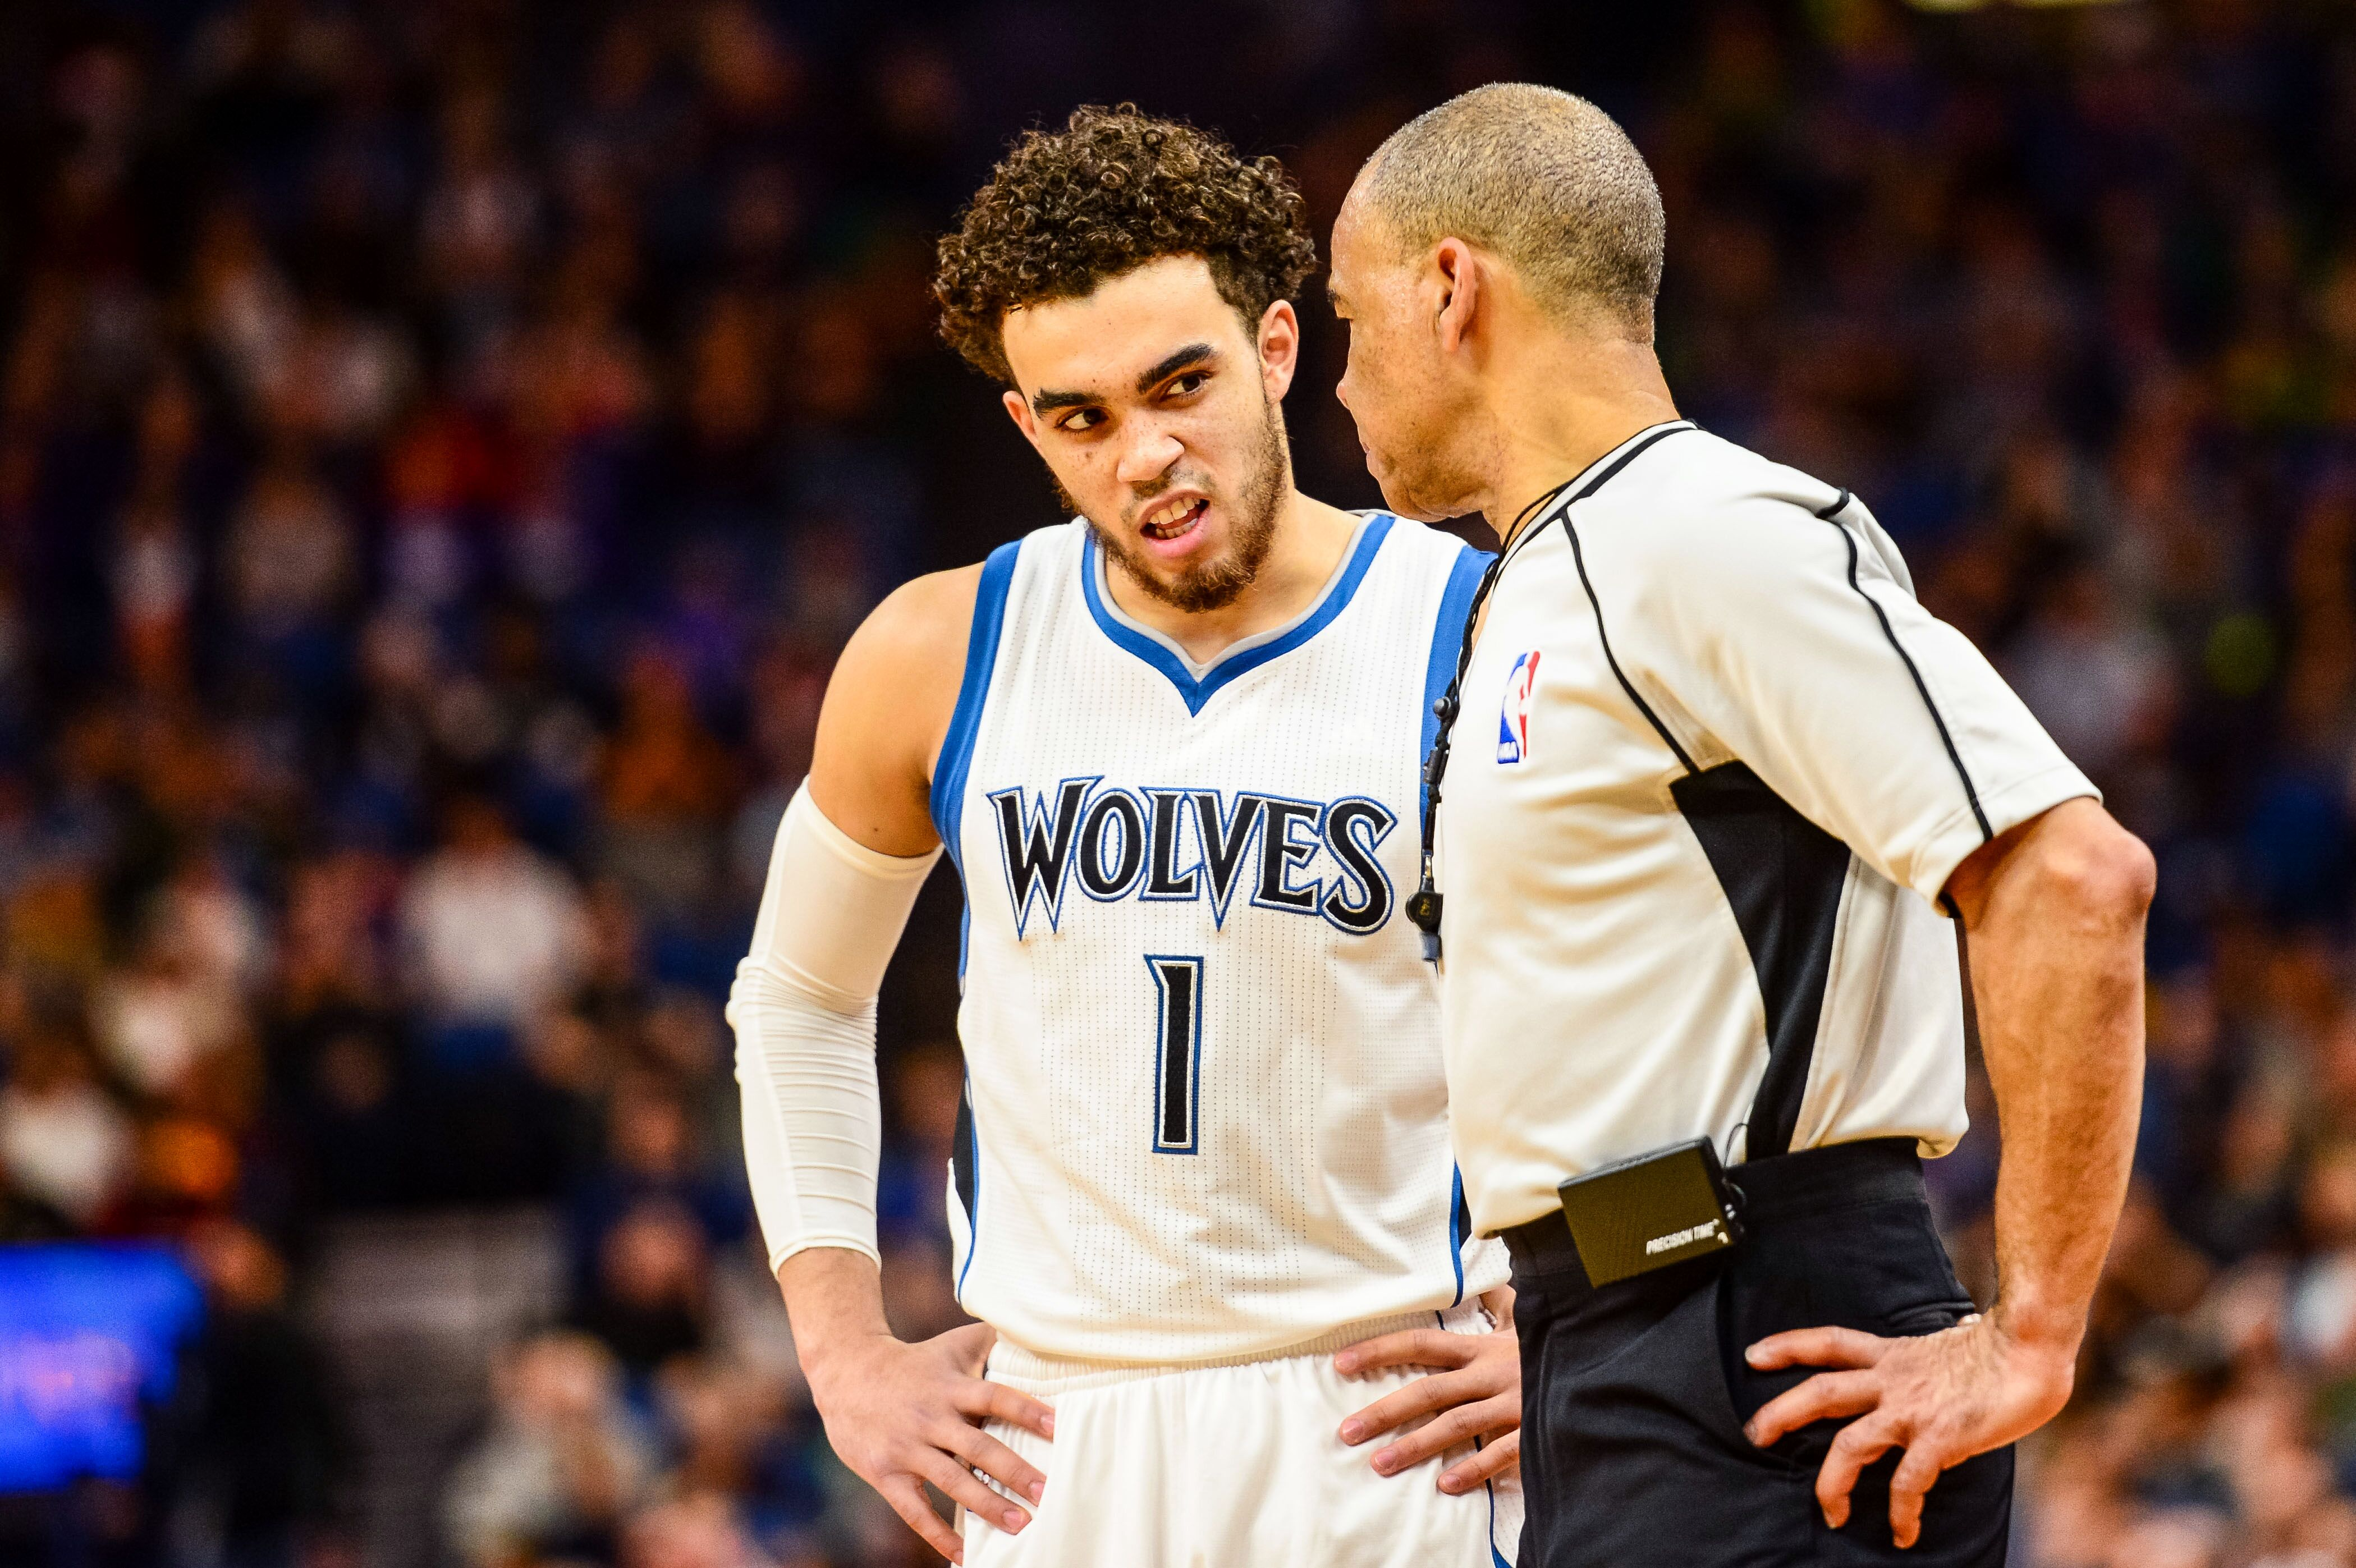 Tyus Jones Pulled The Short Straw With The Minnesota